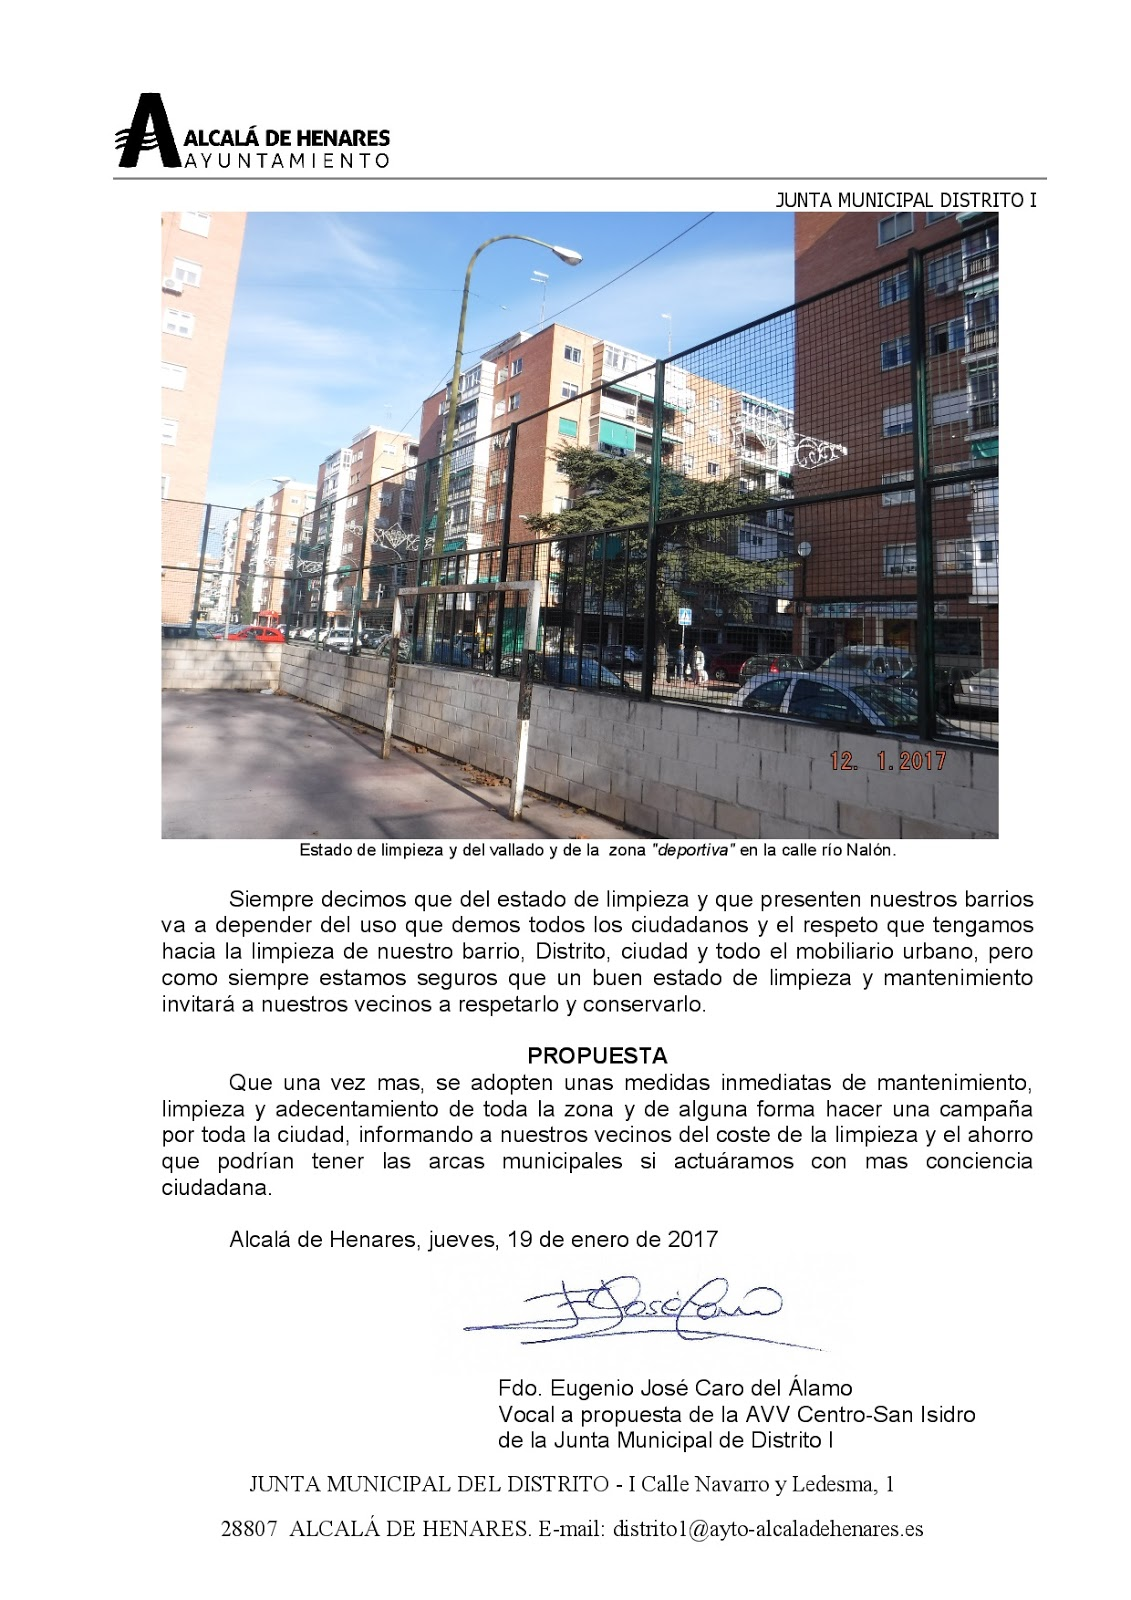 Ahorro total alcala de henares cool besbswy with ahorro for Ahorro total